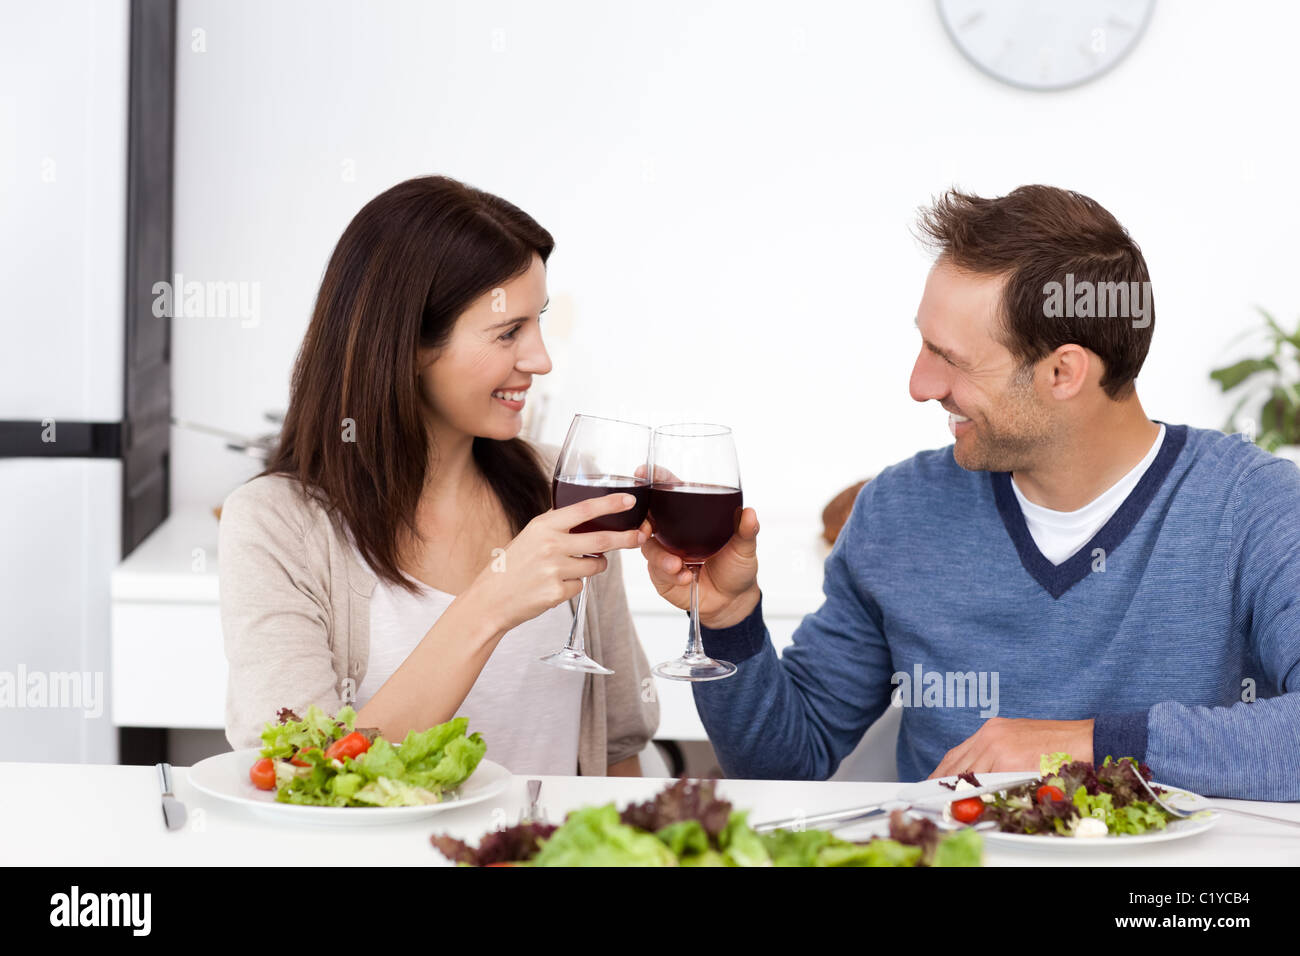 Lovely couple clinking glasses of red wine during lunch - Stock Image